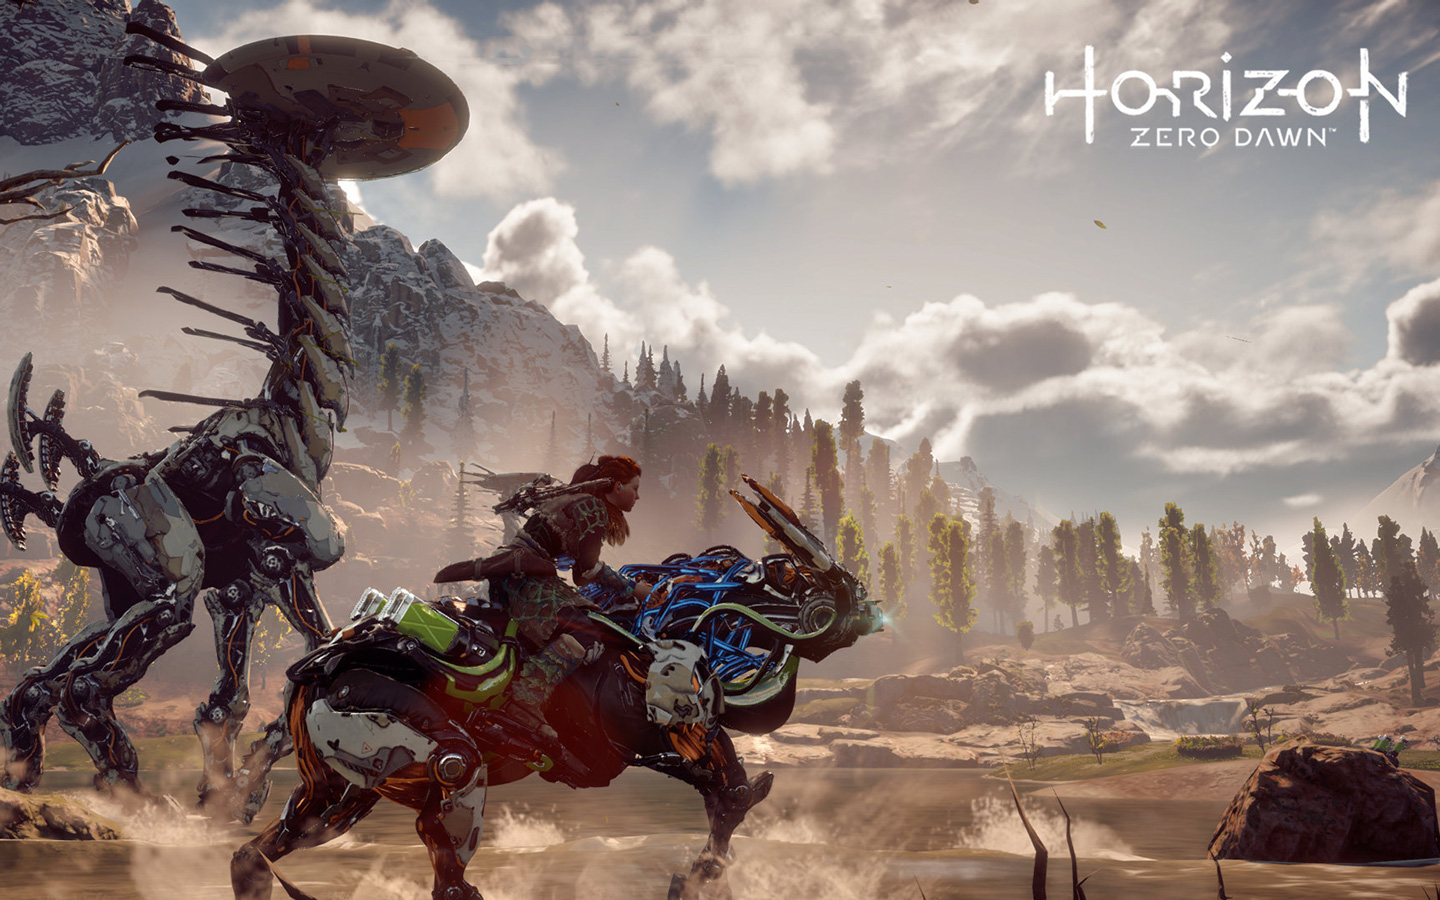 Free Horizon Zero Dawn Wallpaper in 1440x900